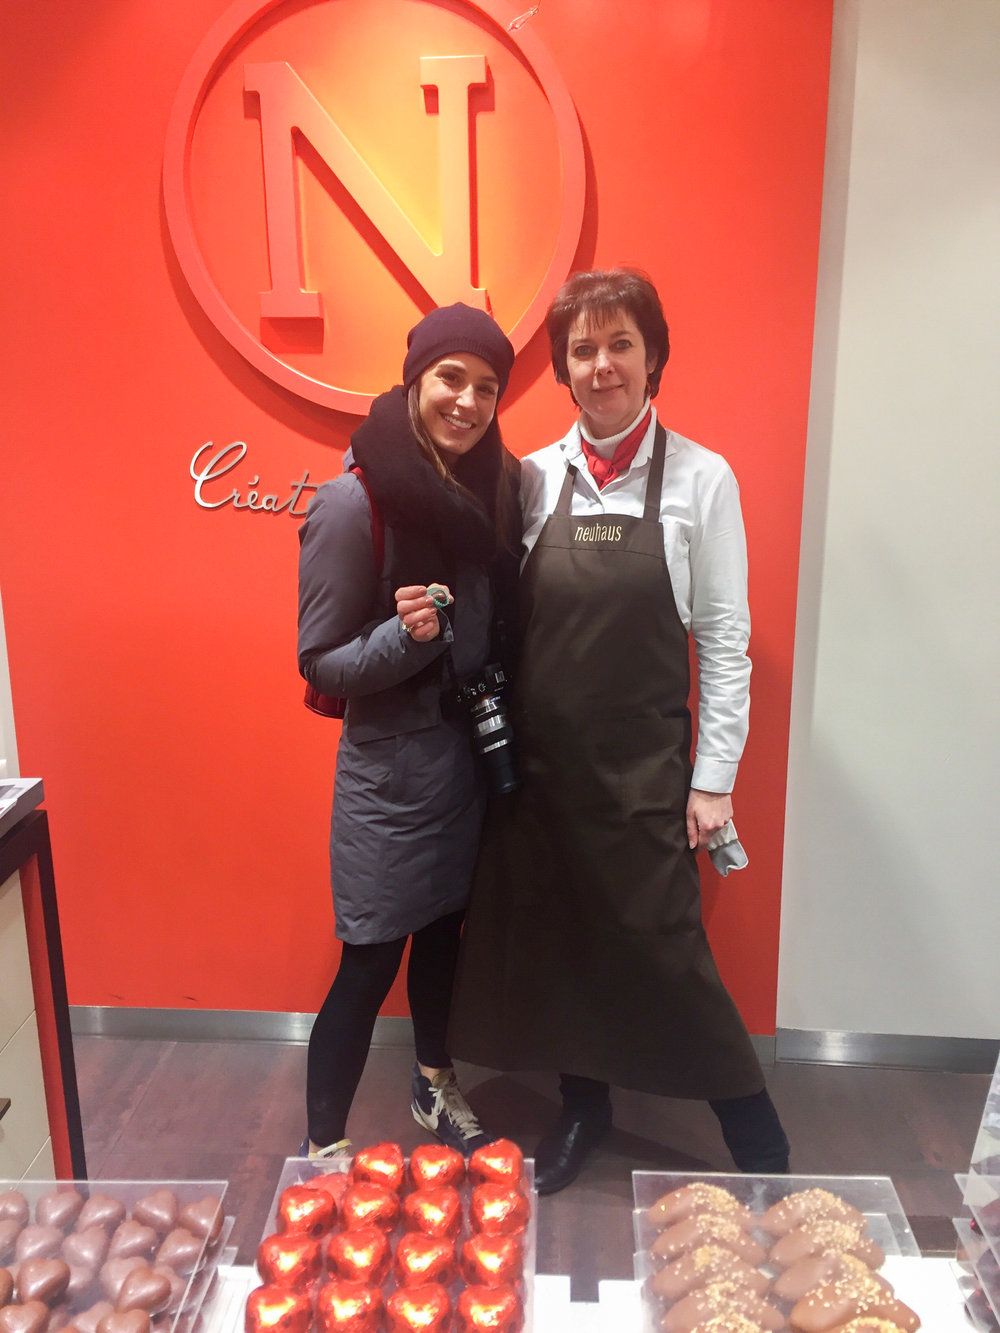 anne, our bff from nehaus chocolate